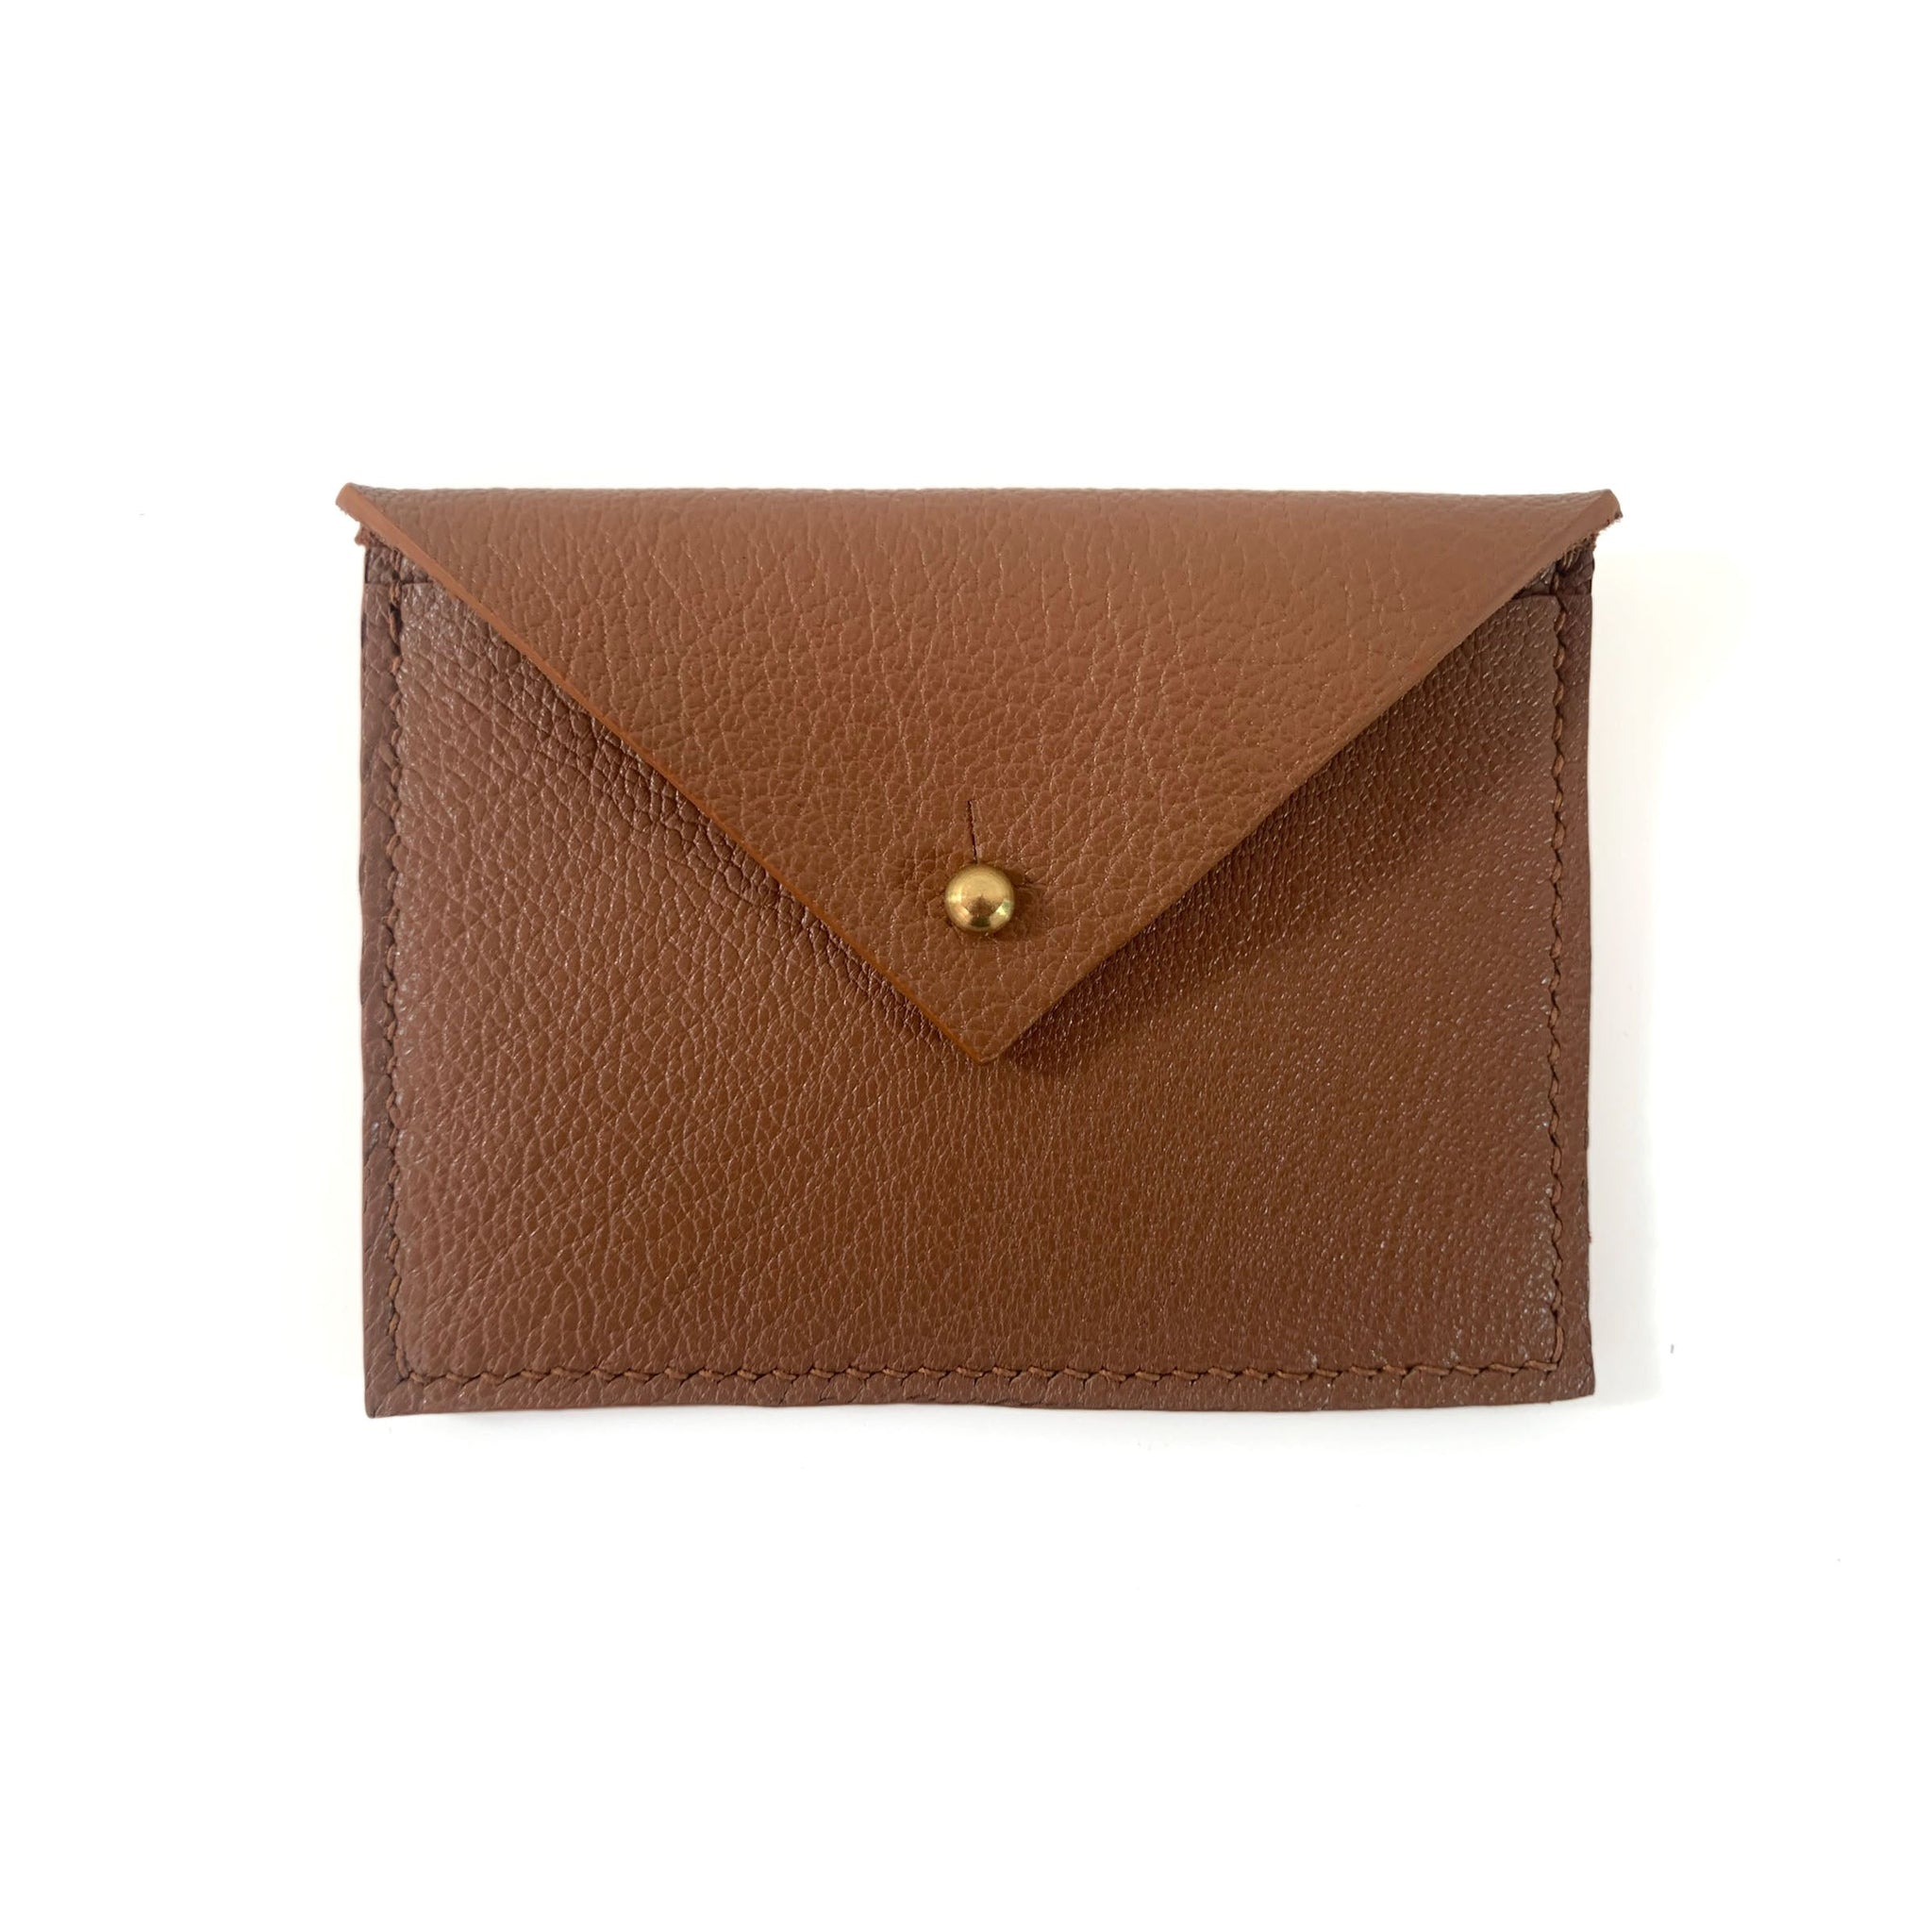 Elsie Card Case - Caramel